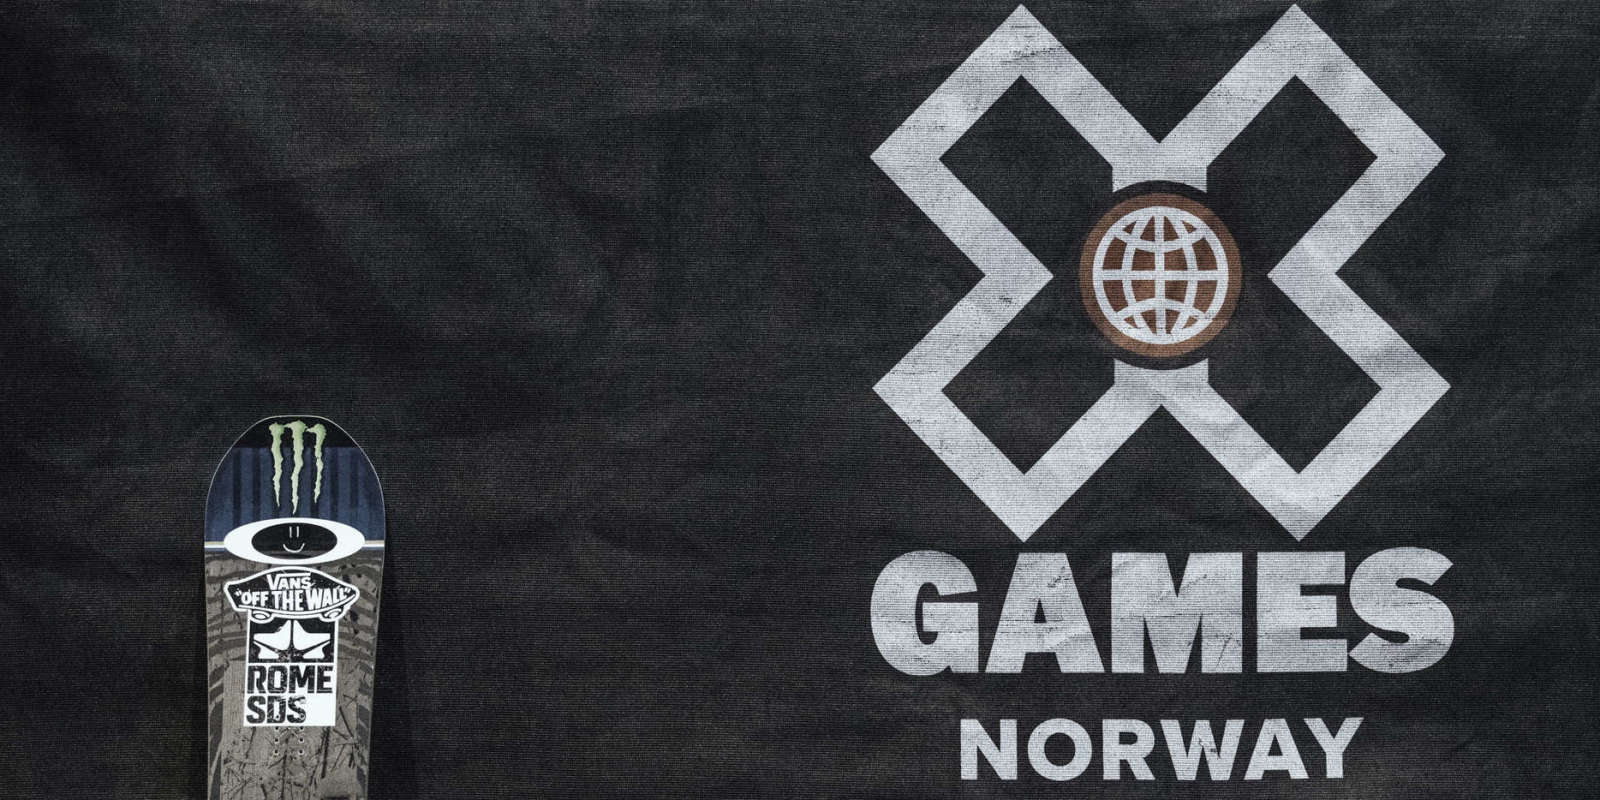 Images from the 2019 X Games in Oslo, Norway